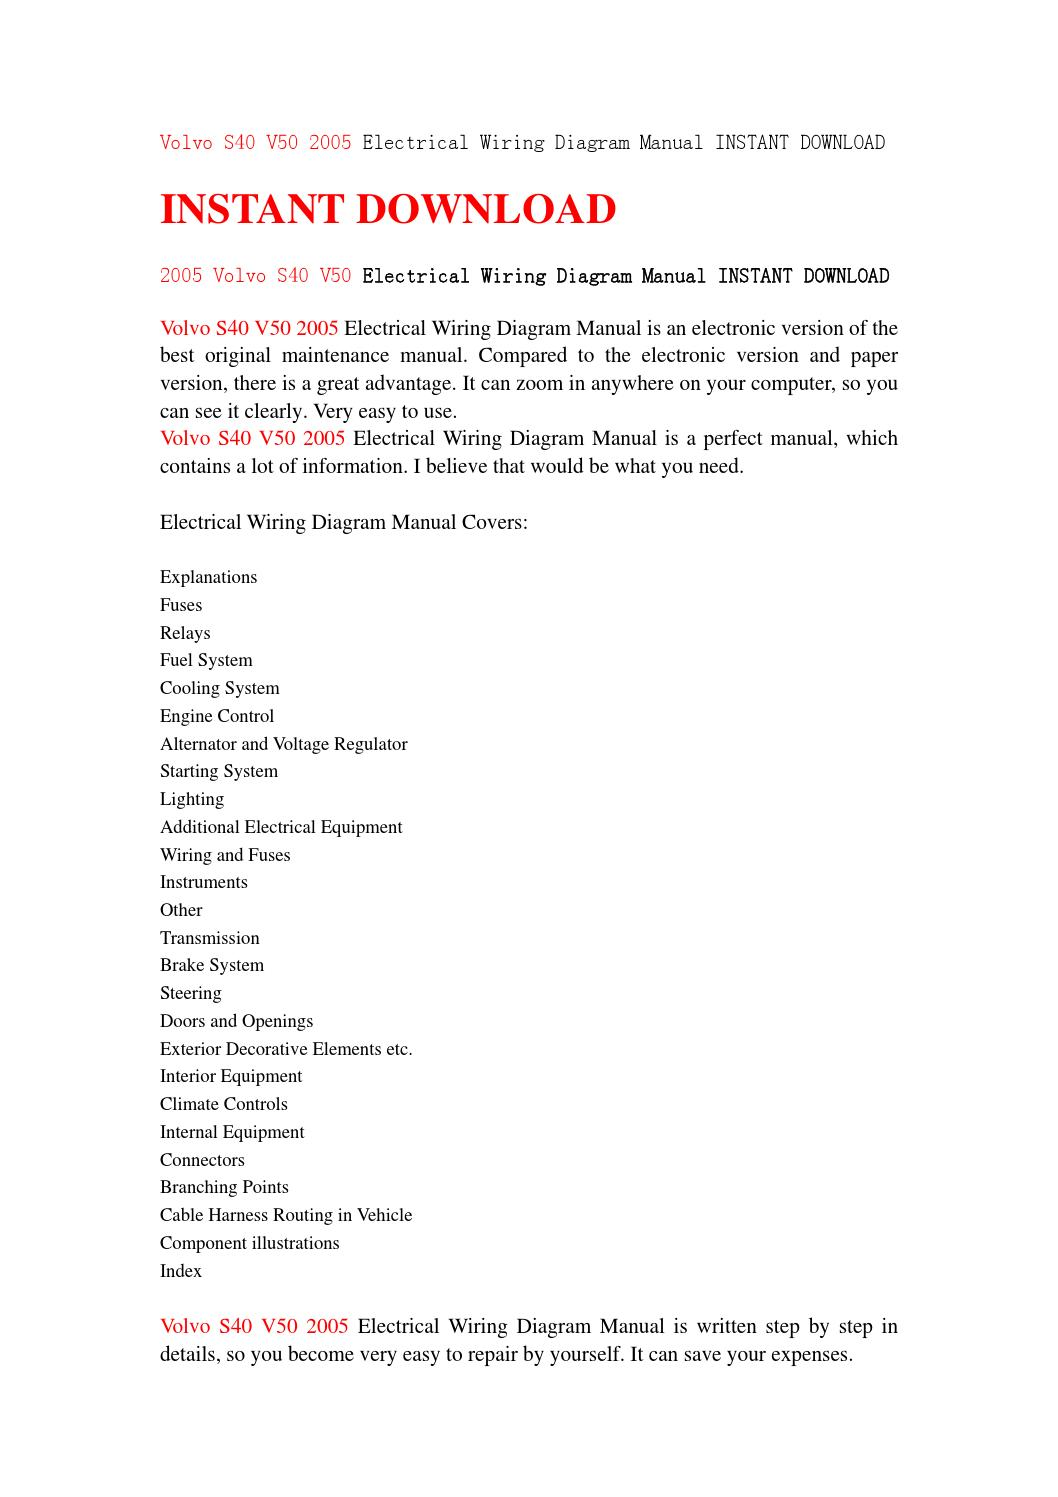 Volvo S40 Fuse Box 2005 Wiring Library Passenger V50 Electrical Diagram Manual Instant Download By Jjfhsbebf Issuu